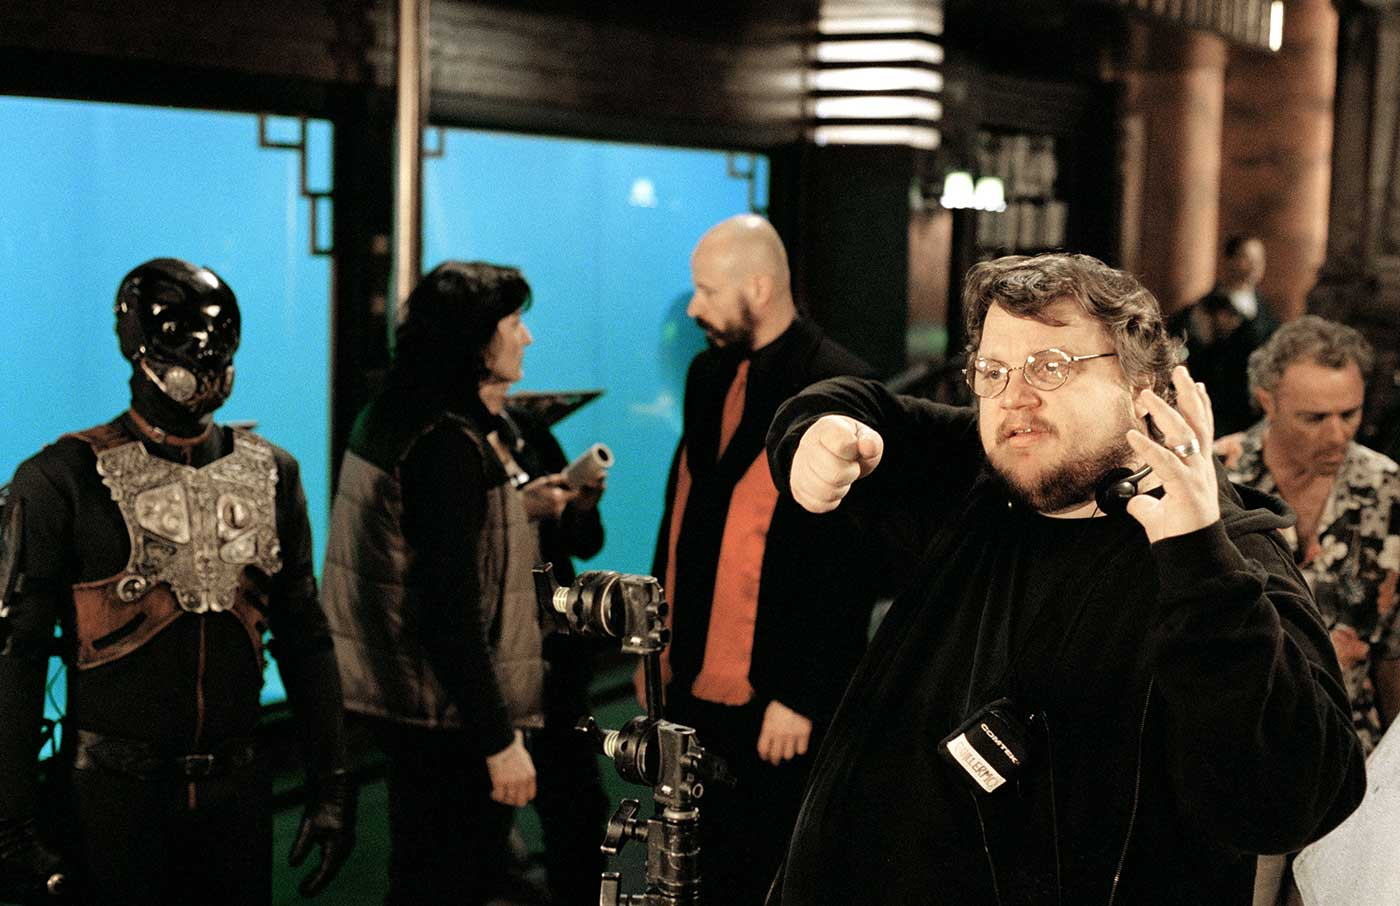 Director Guillermo del Toro directs a scene in his favorite environment.